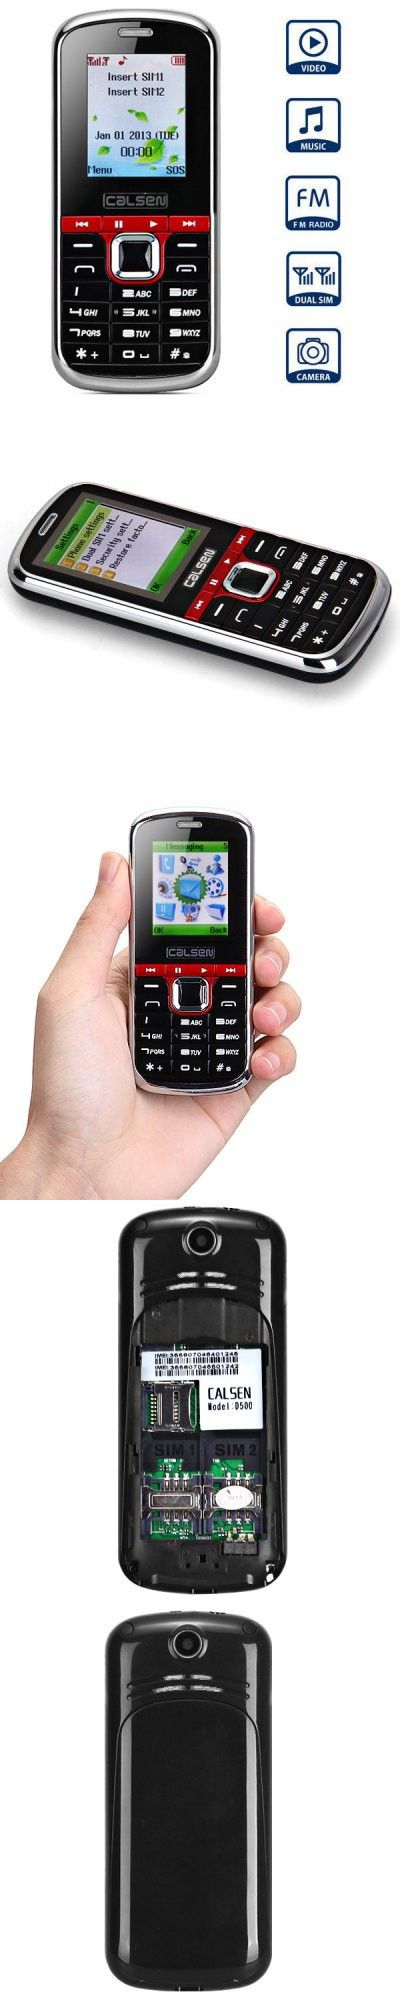 D500 Dual Band Cell Phone with 1.8 inch Screen Dual SIM Bluetooth Camera